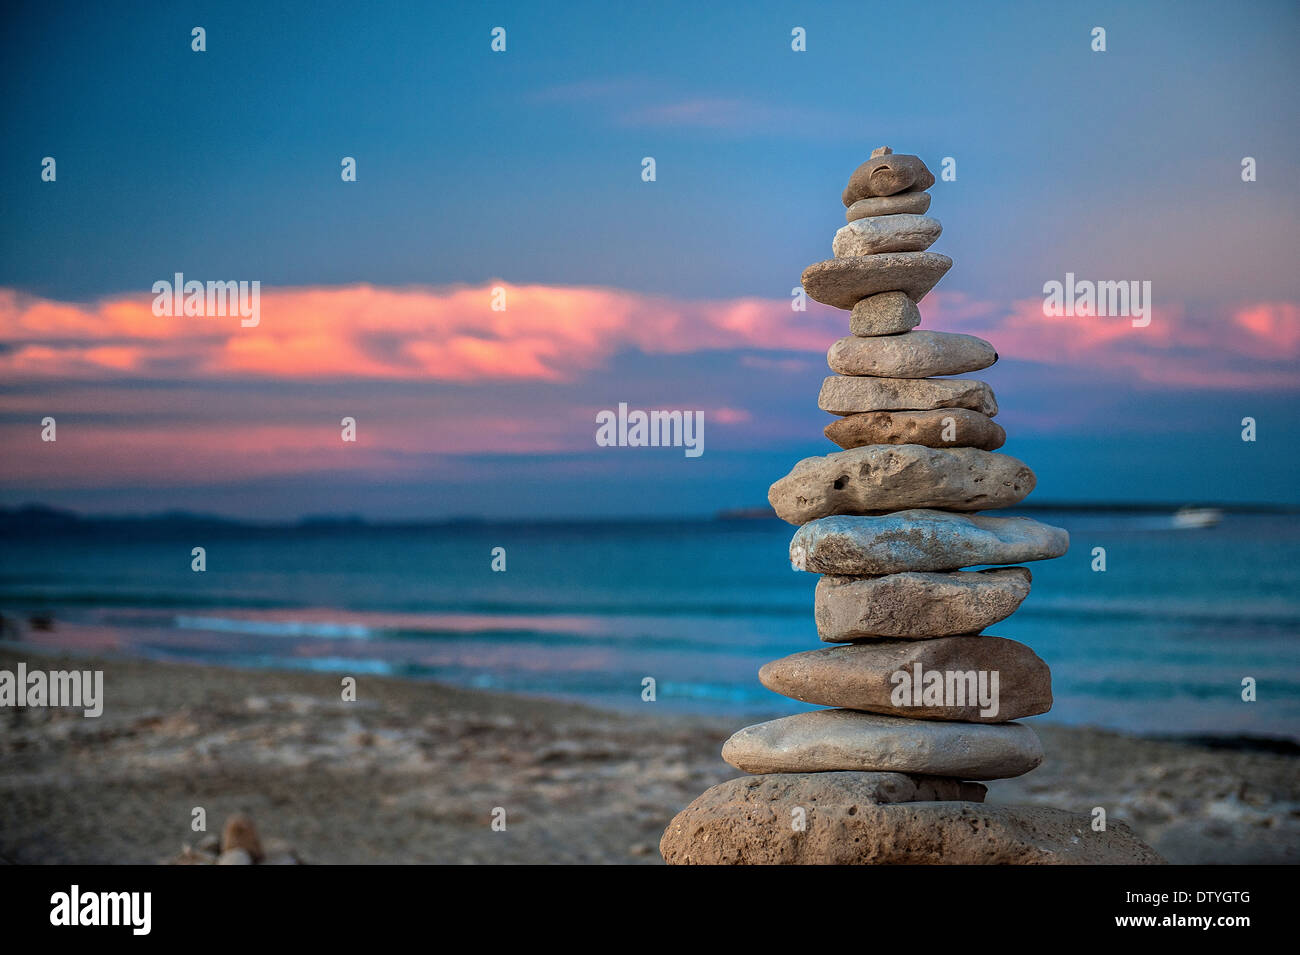 Formentera, Balearic Island. Ses Illetes Beach. Sculptures made ​​of stones at sunset on the Ses Illetes beach. The sky is magic - Stock Image